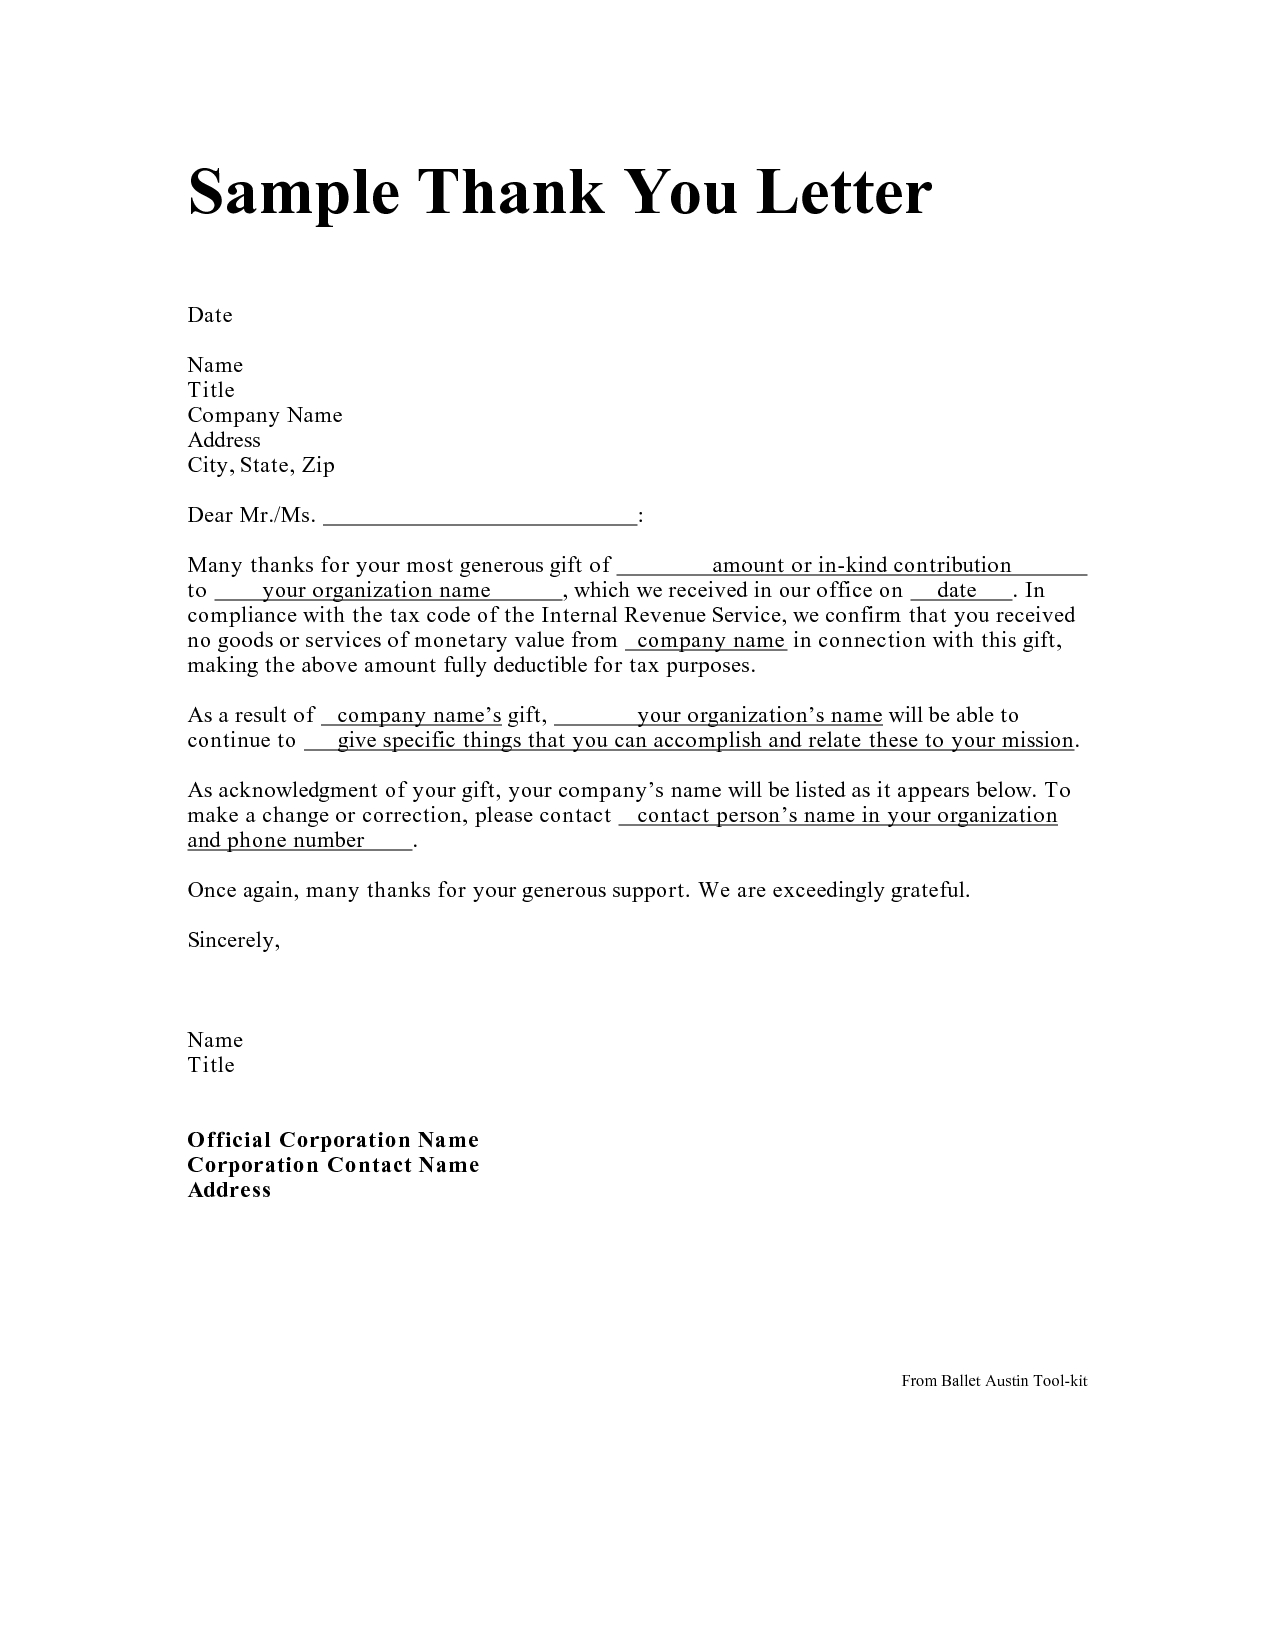 Confirmation Letter Template - Personal Thank You Letter Personal Thank You Letter Samples